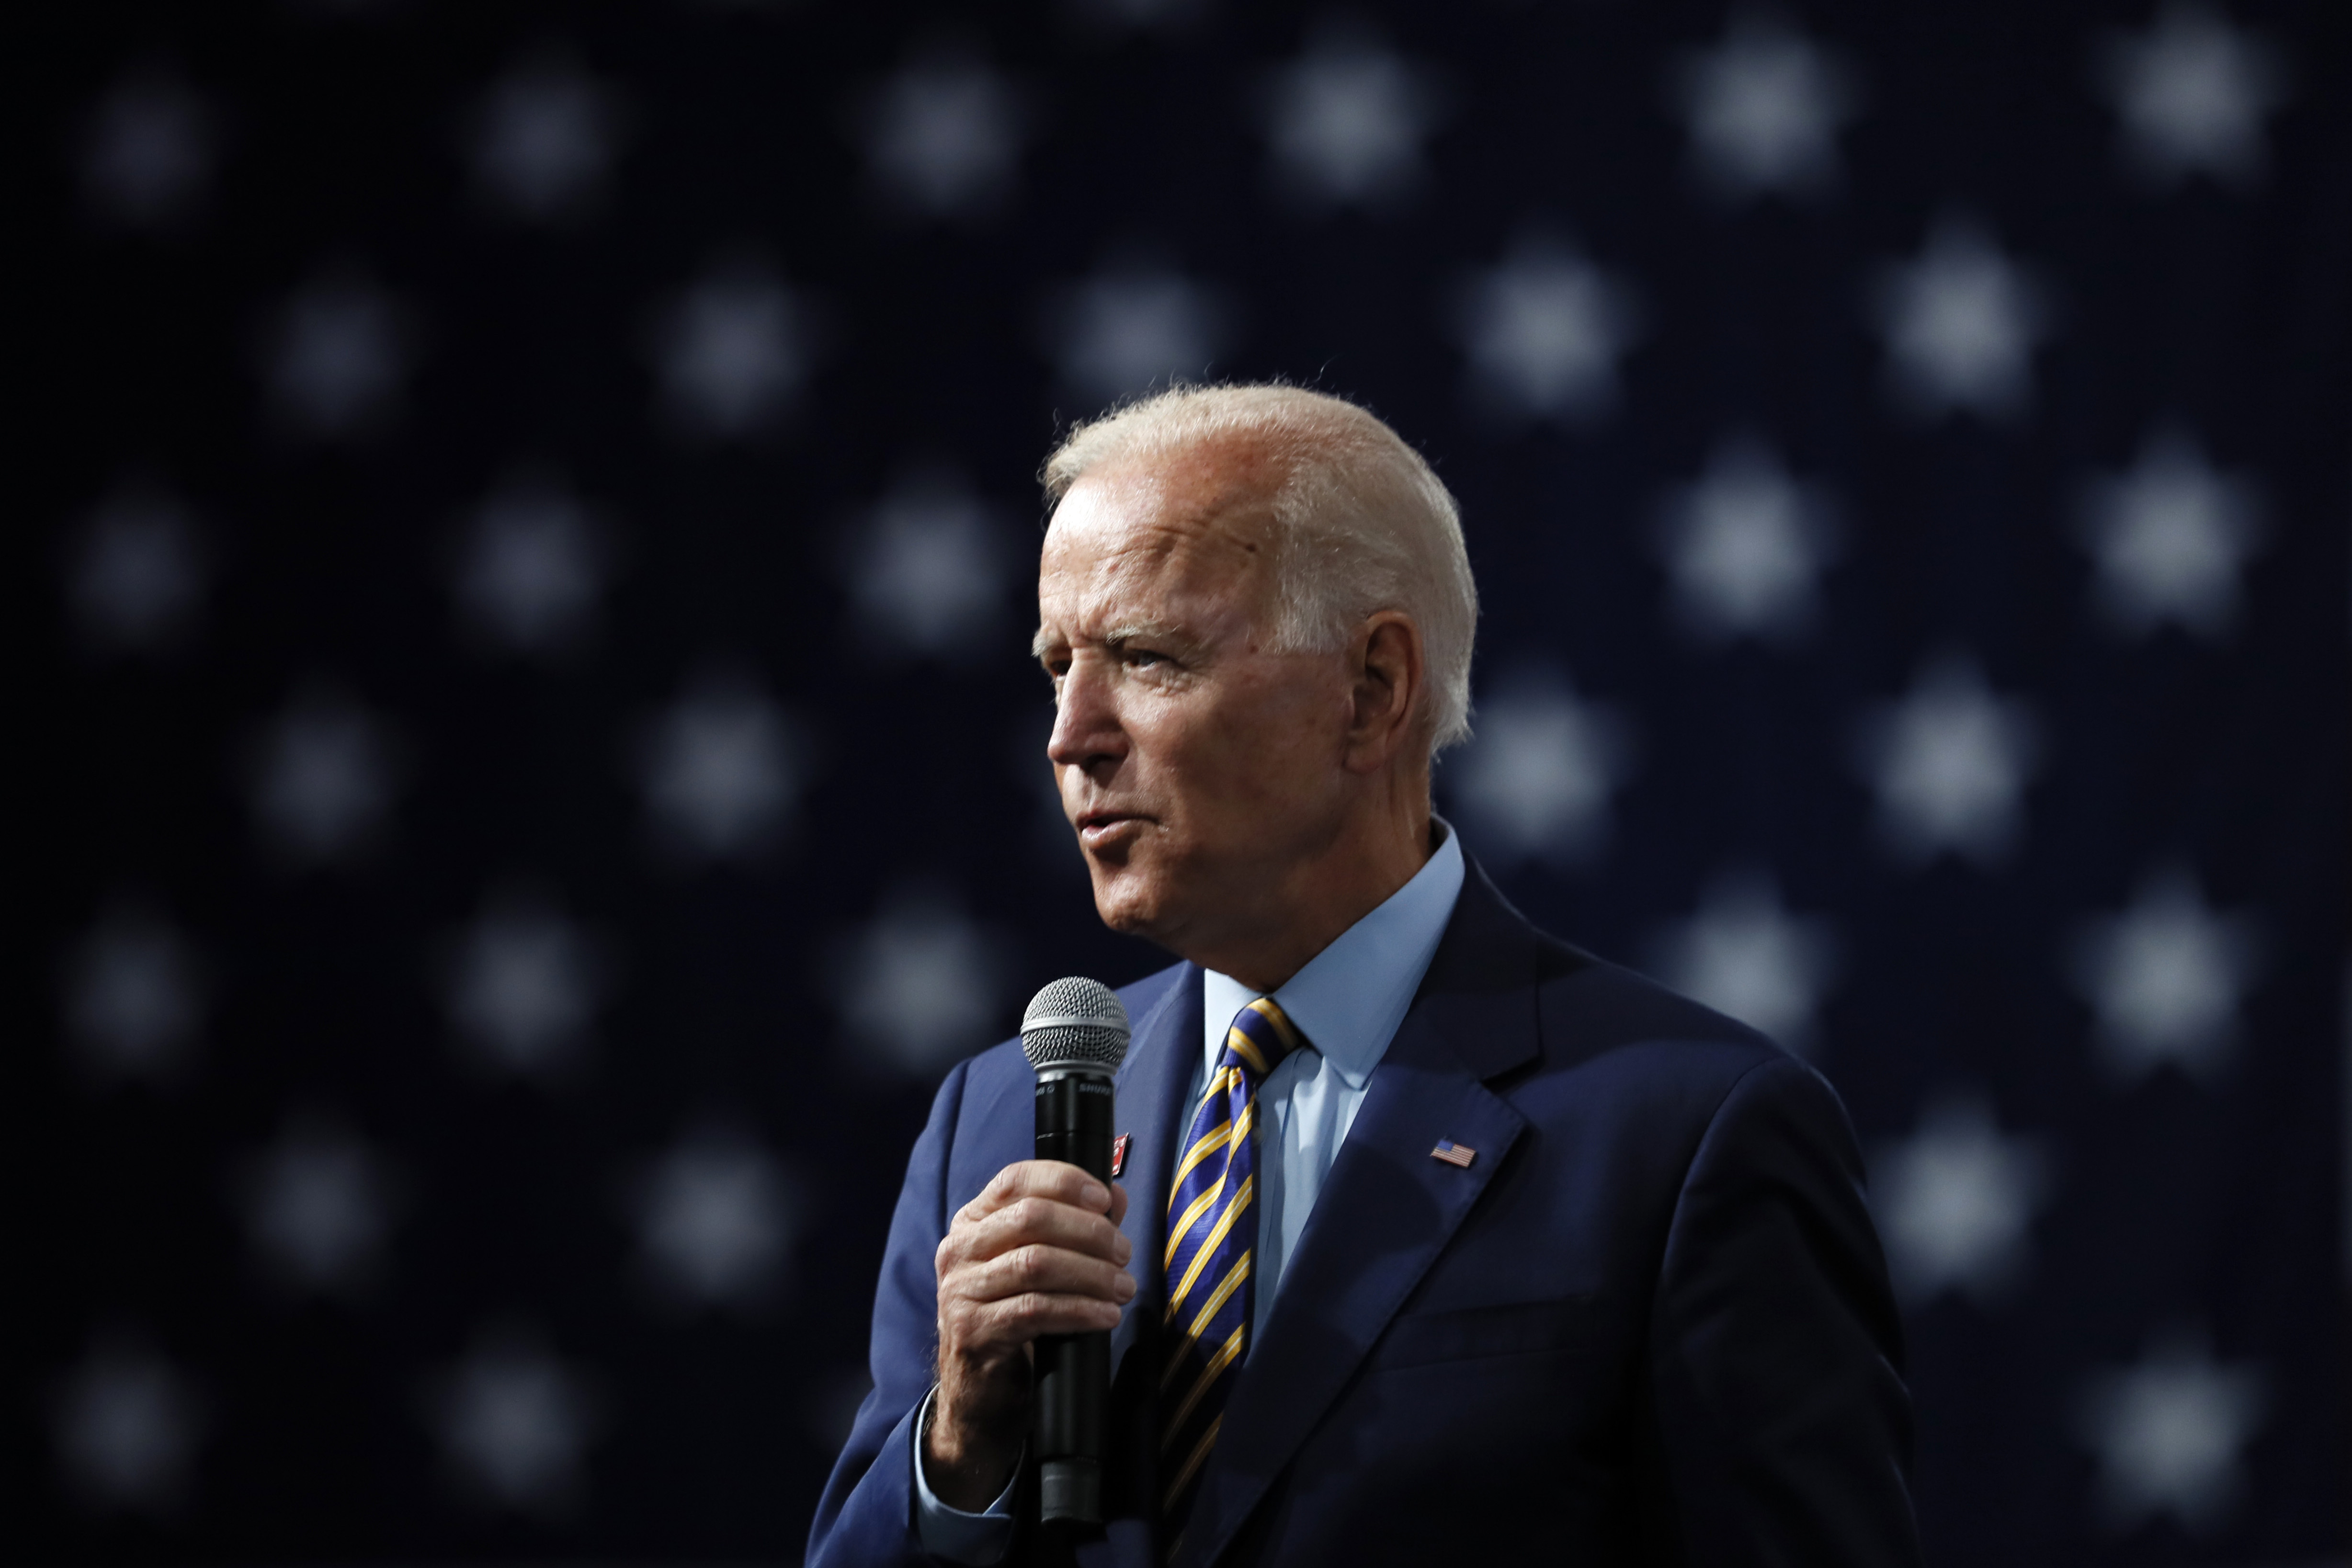 Joe Biden And The 2020 Presidential Election News Facts And Where He Stands